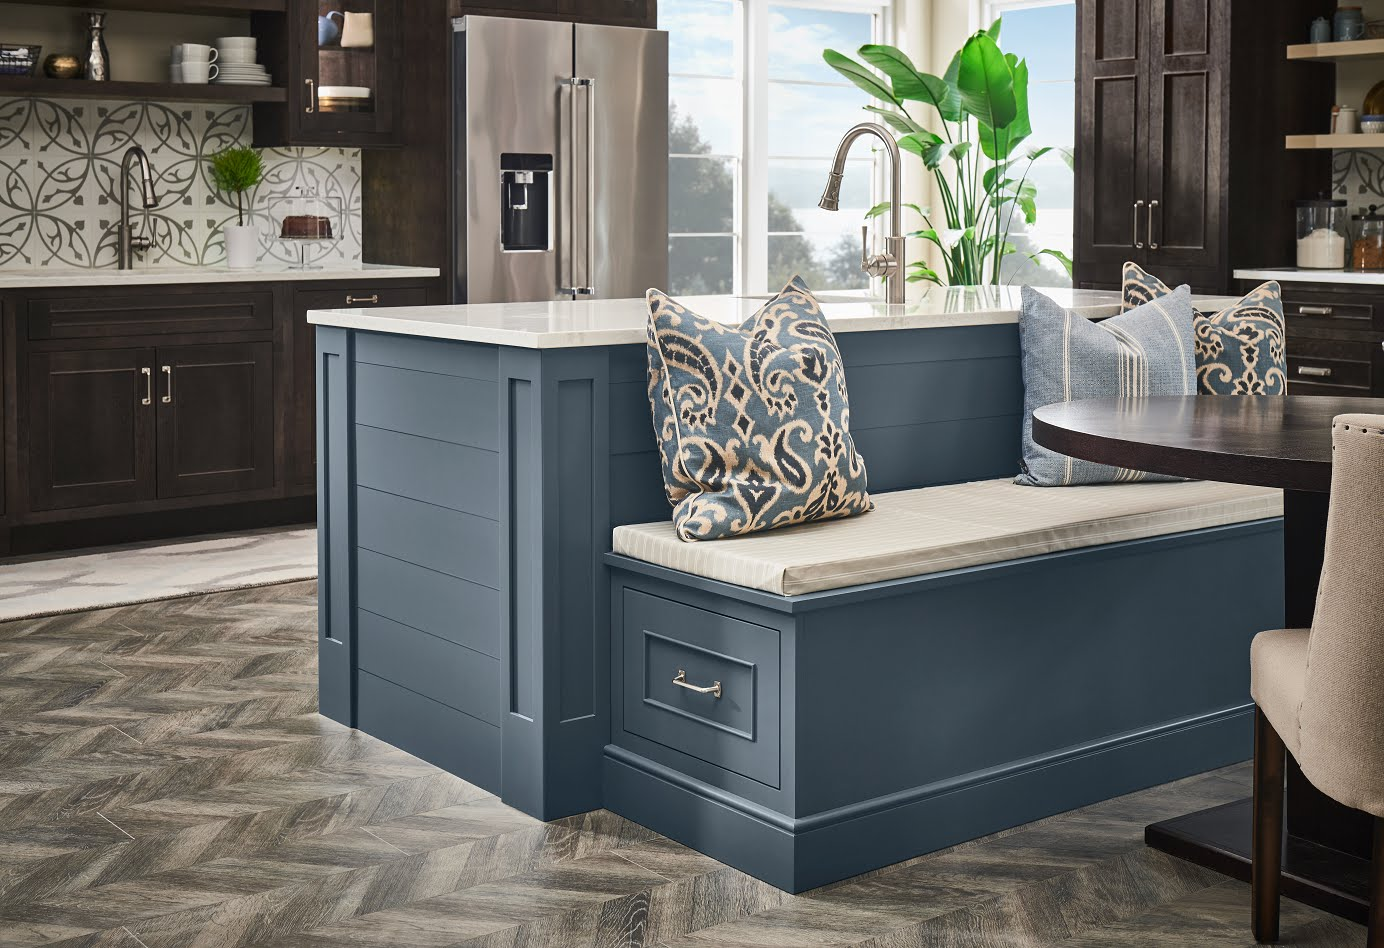 Style Design Remodeling Ideas For Today S Lifestyle Coastal Living Inspired Kitchen Design